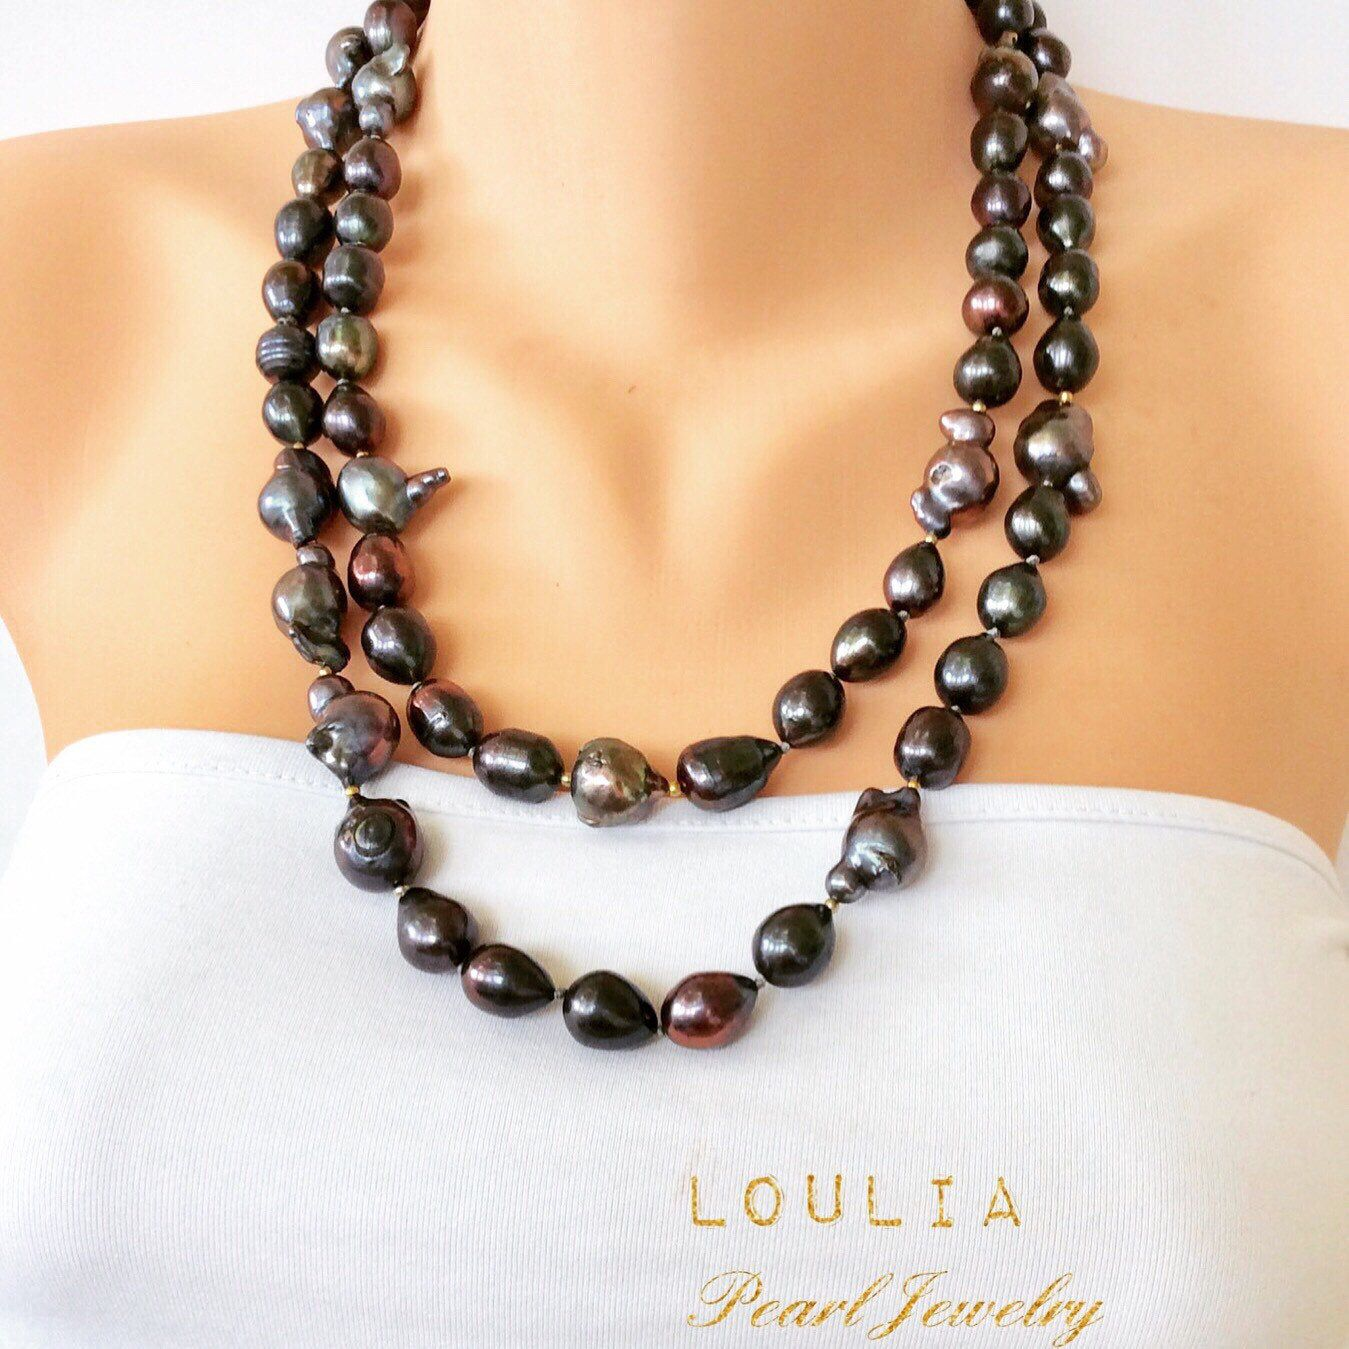 Baroque Pearls Peacock Pearls Long Rope Necklace Baroque Etsy Long Pearl Necklaces Necklace Rope Necklace